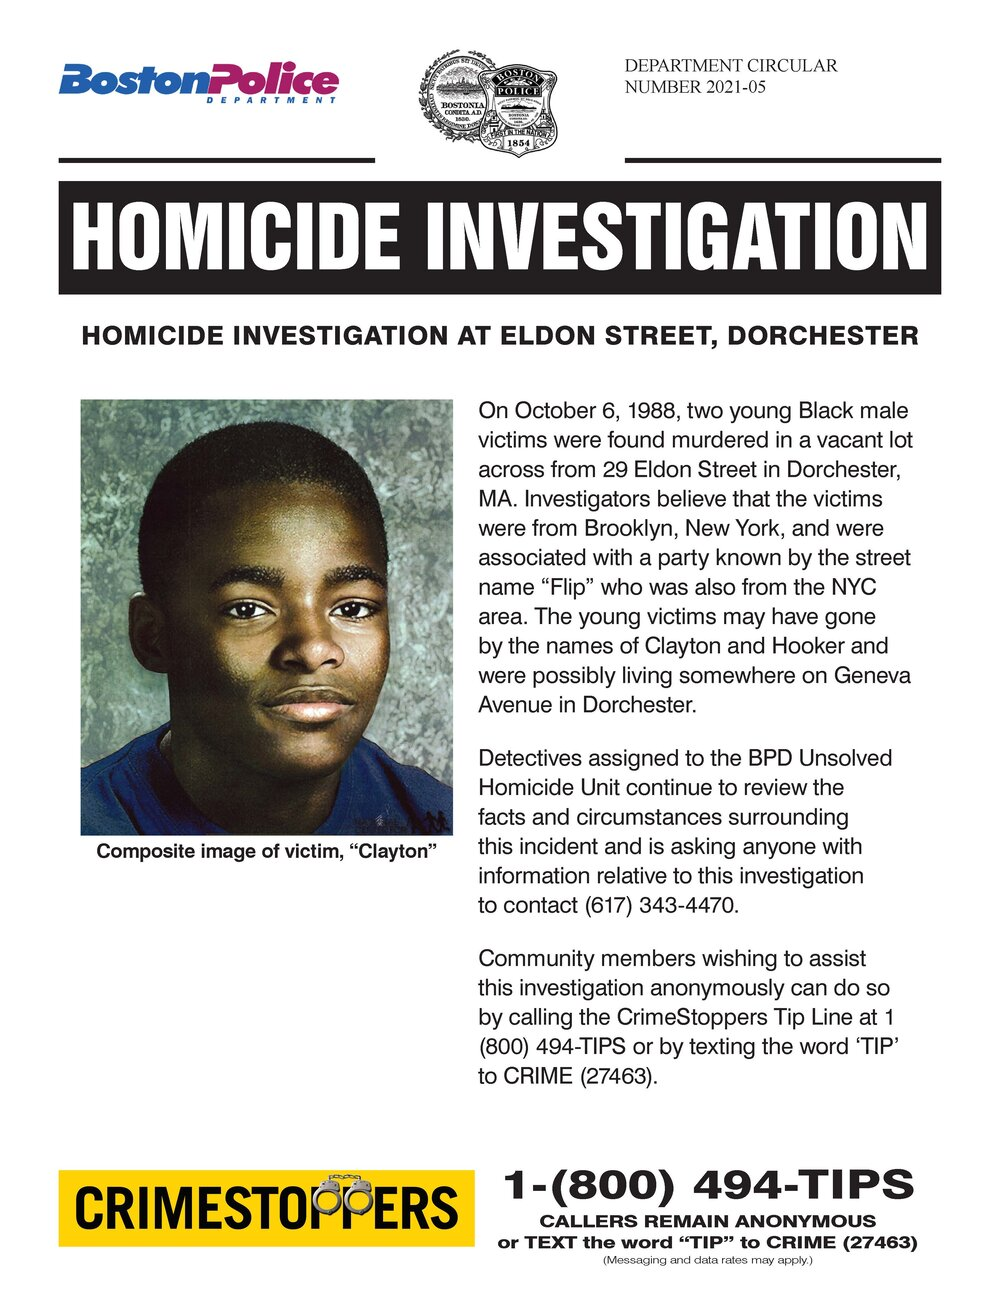 SEEKING INFORMATION: The BPD Homicide Unit Requests the Public's Help in Efforts to Solve Cold Case